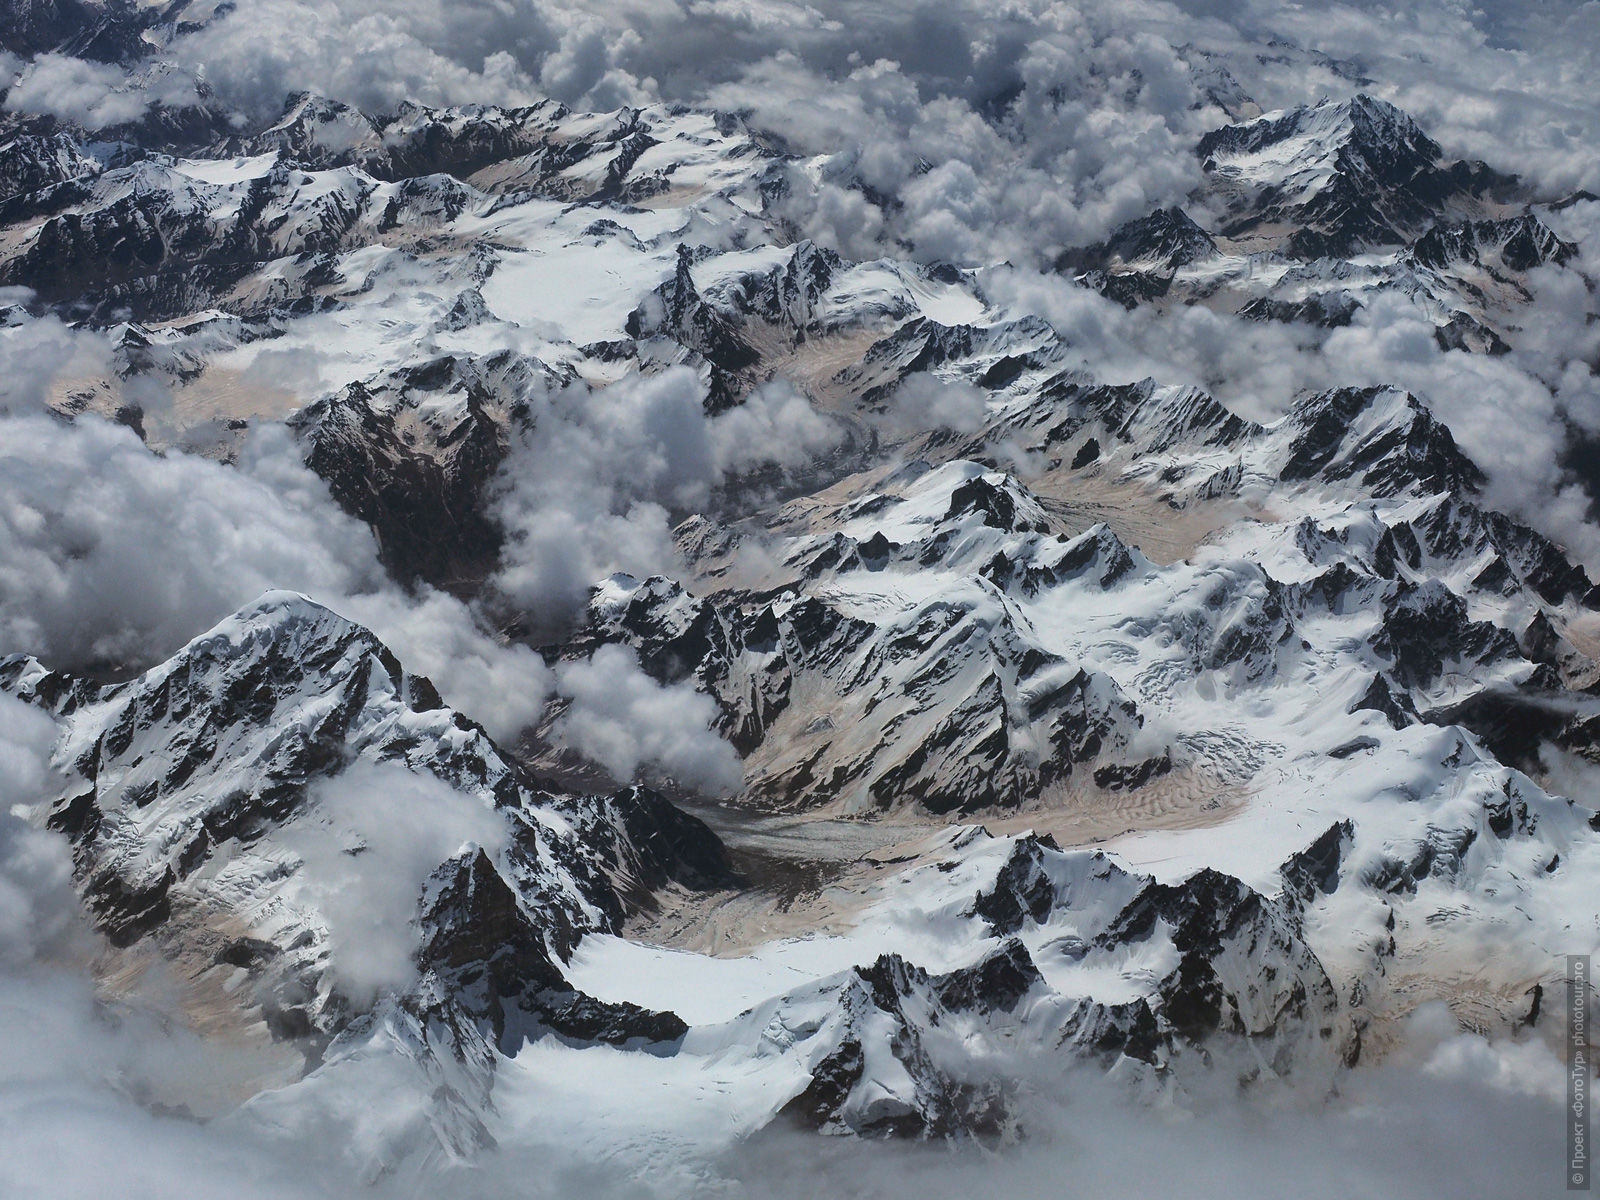 Mountain ranges of Ladakh. Photo tour to Tibet for the Winter Mysteries in Ladakh, Stok and Matho monasteries, 01.03. - 03/10/2020